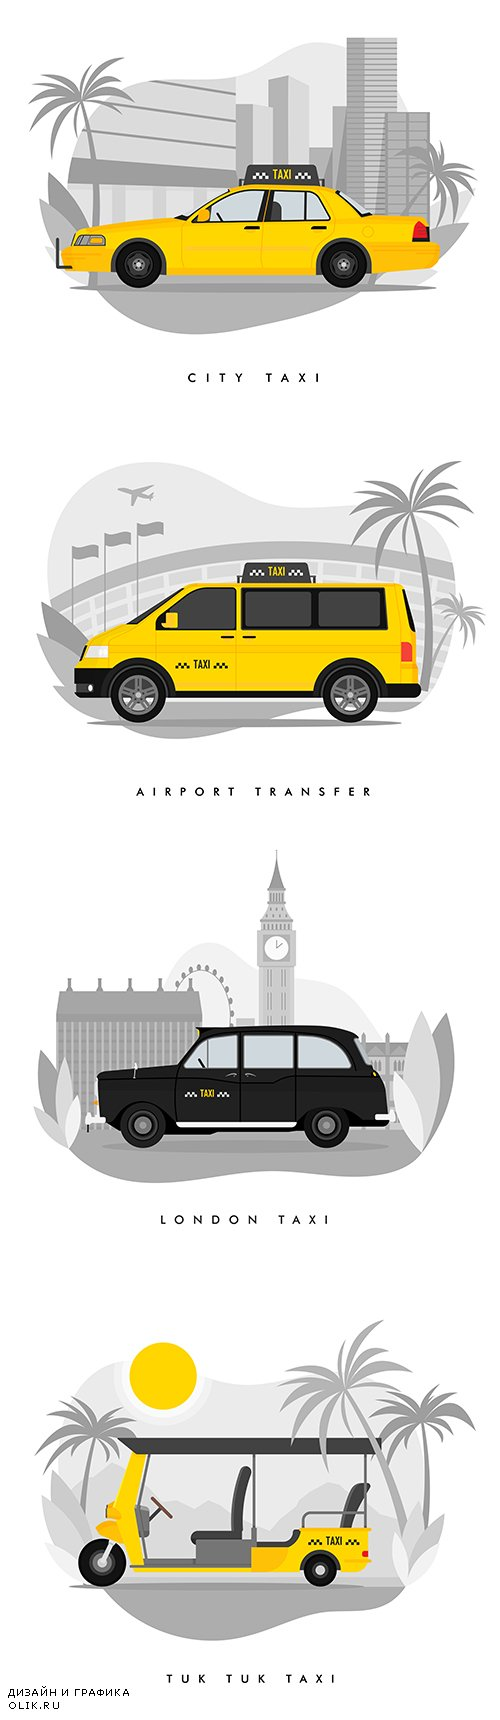 Taxi Services Flat Cartoon Illustrations